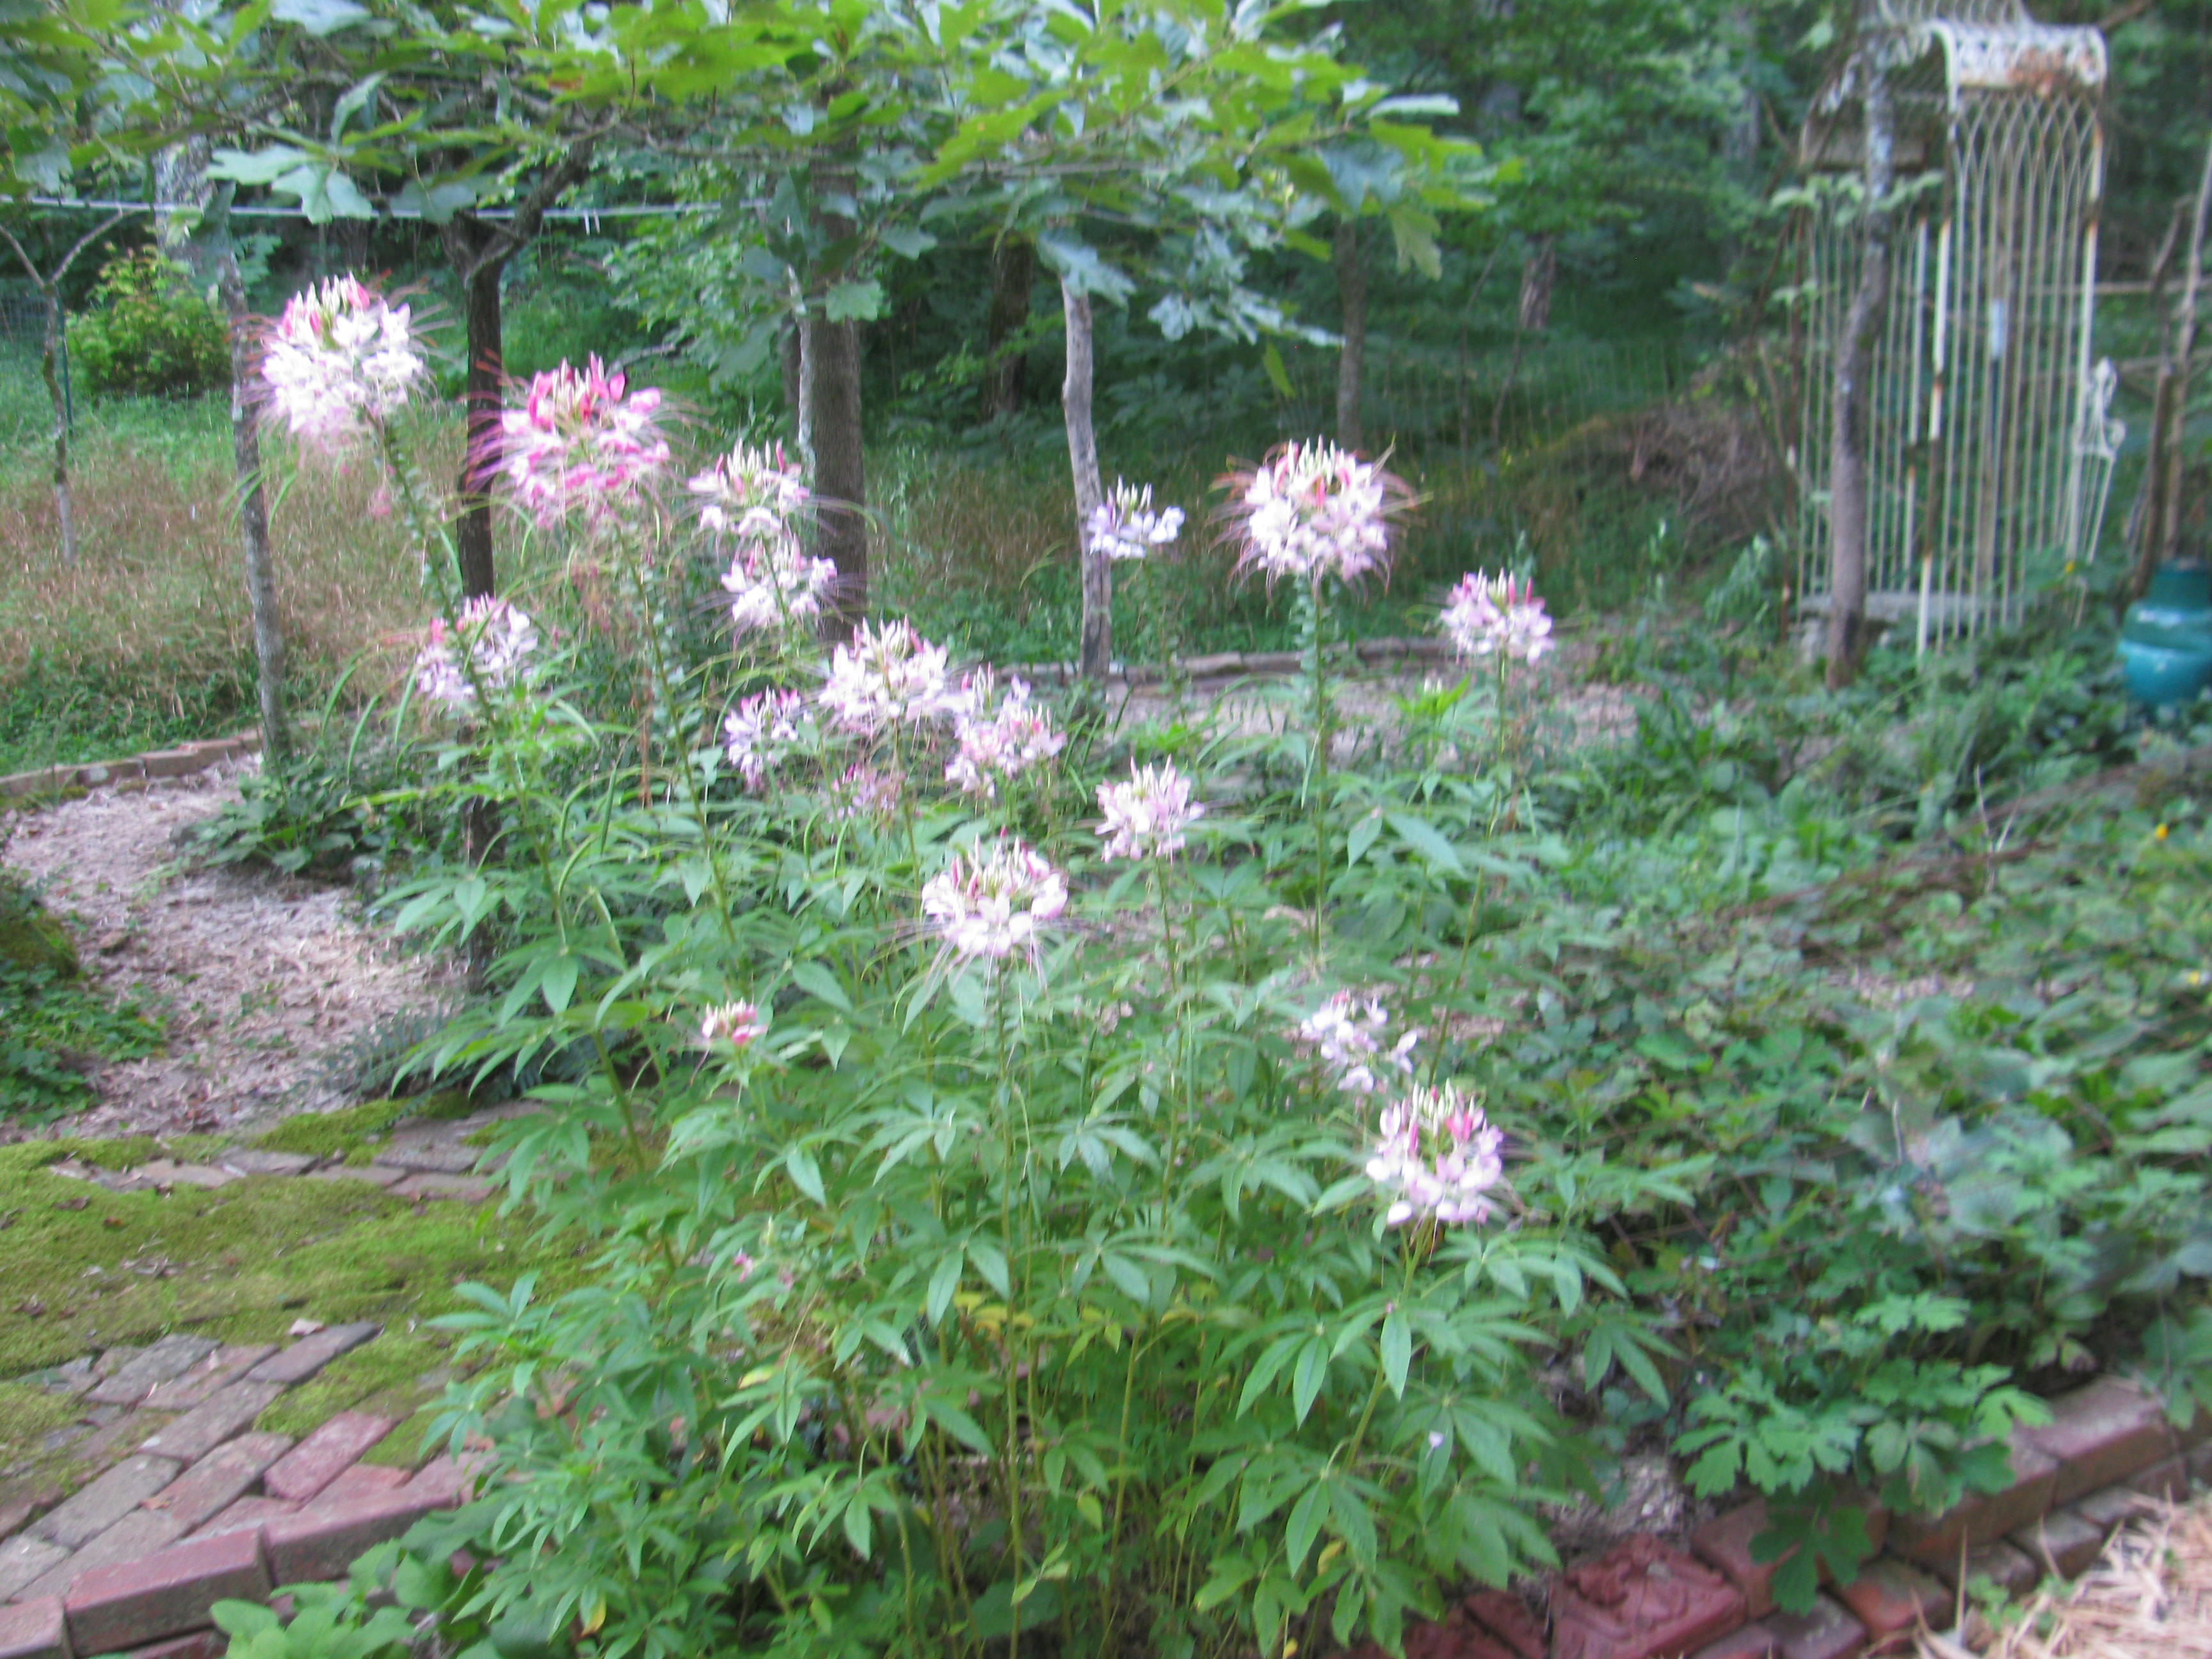 Cleome plants love it hot and dry. These plants volunteered outside the 4' x 9' window on the south side of our house.